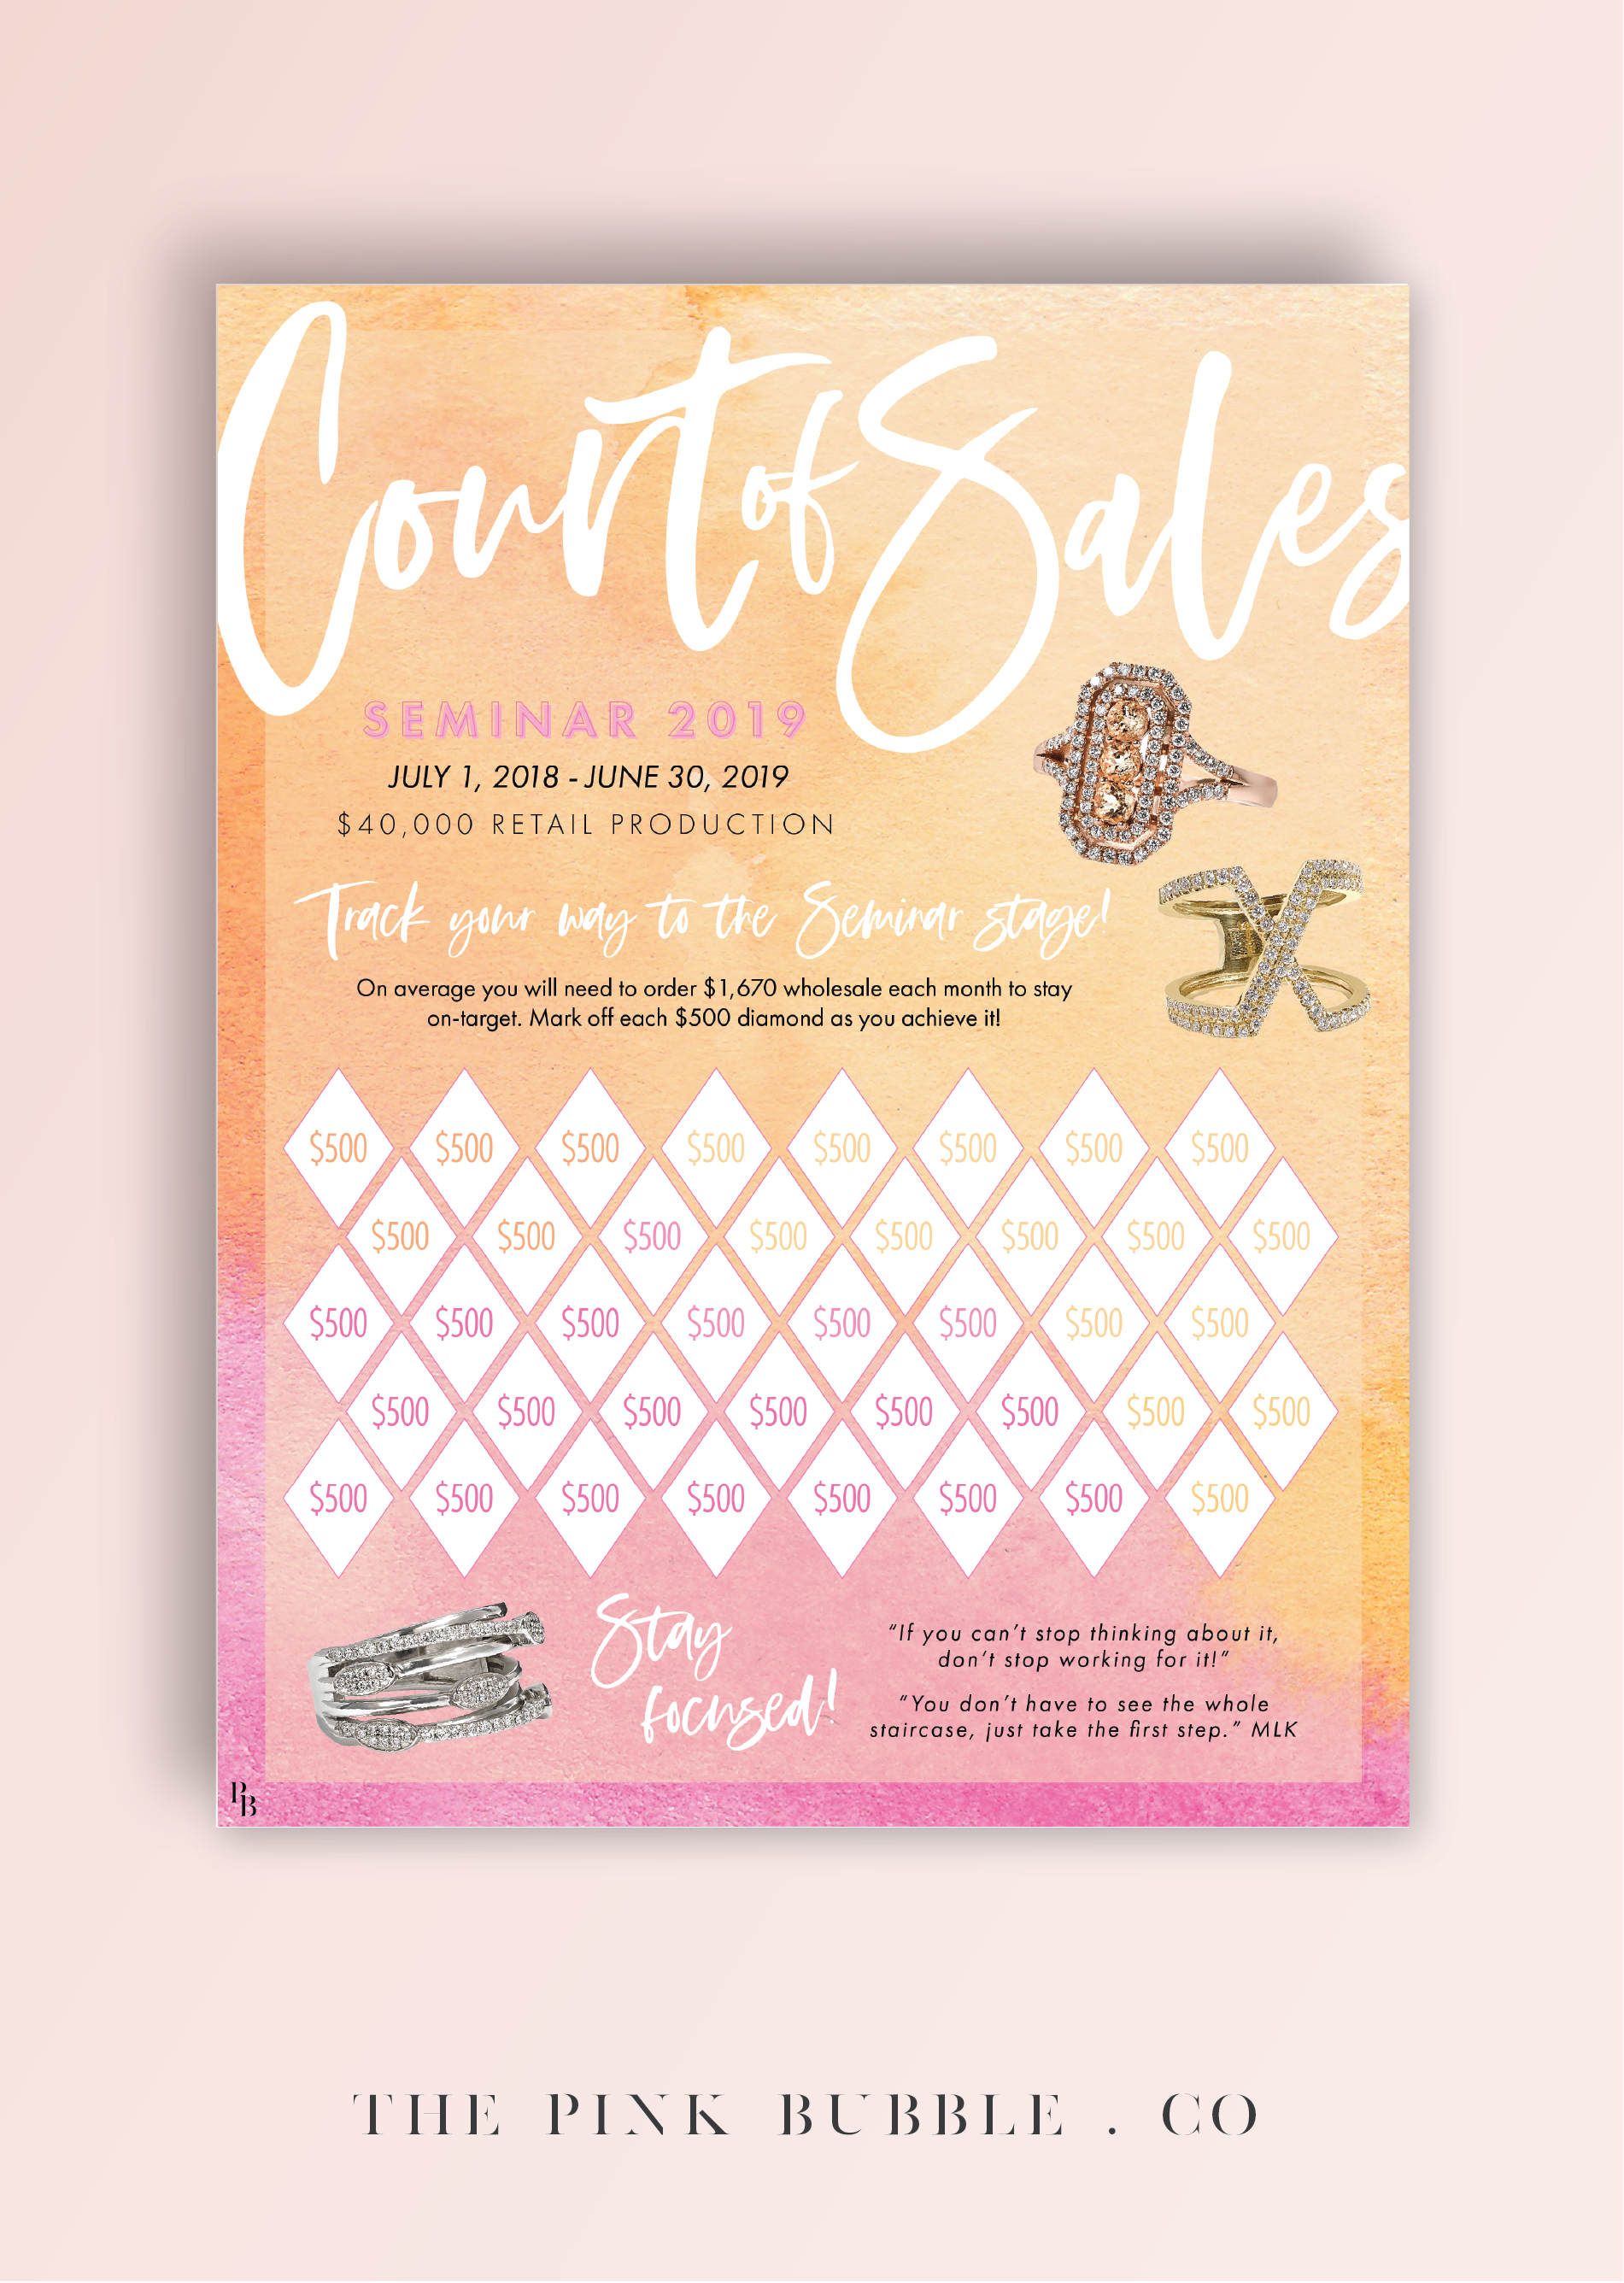 mary kay court of sales 2019 tracking sheet track your way to the